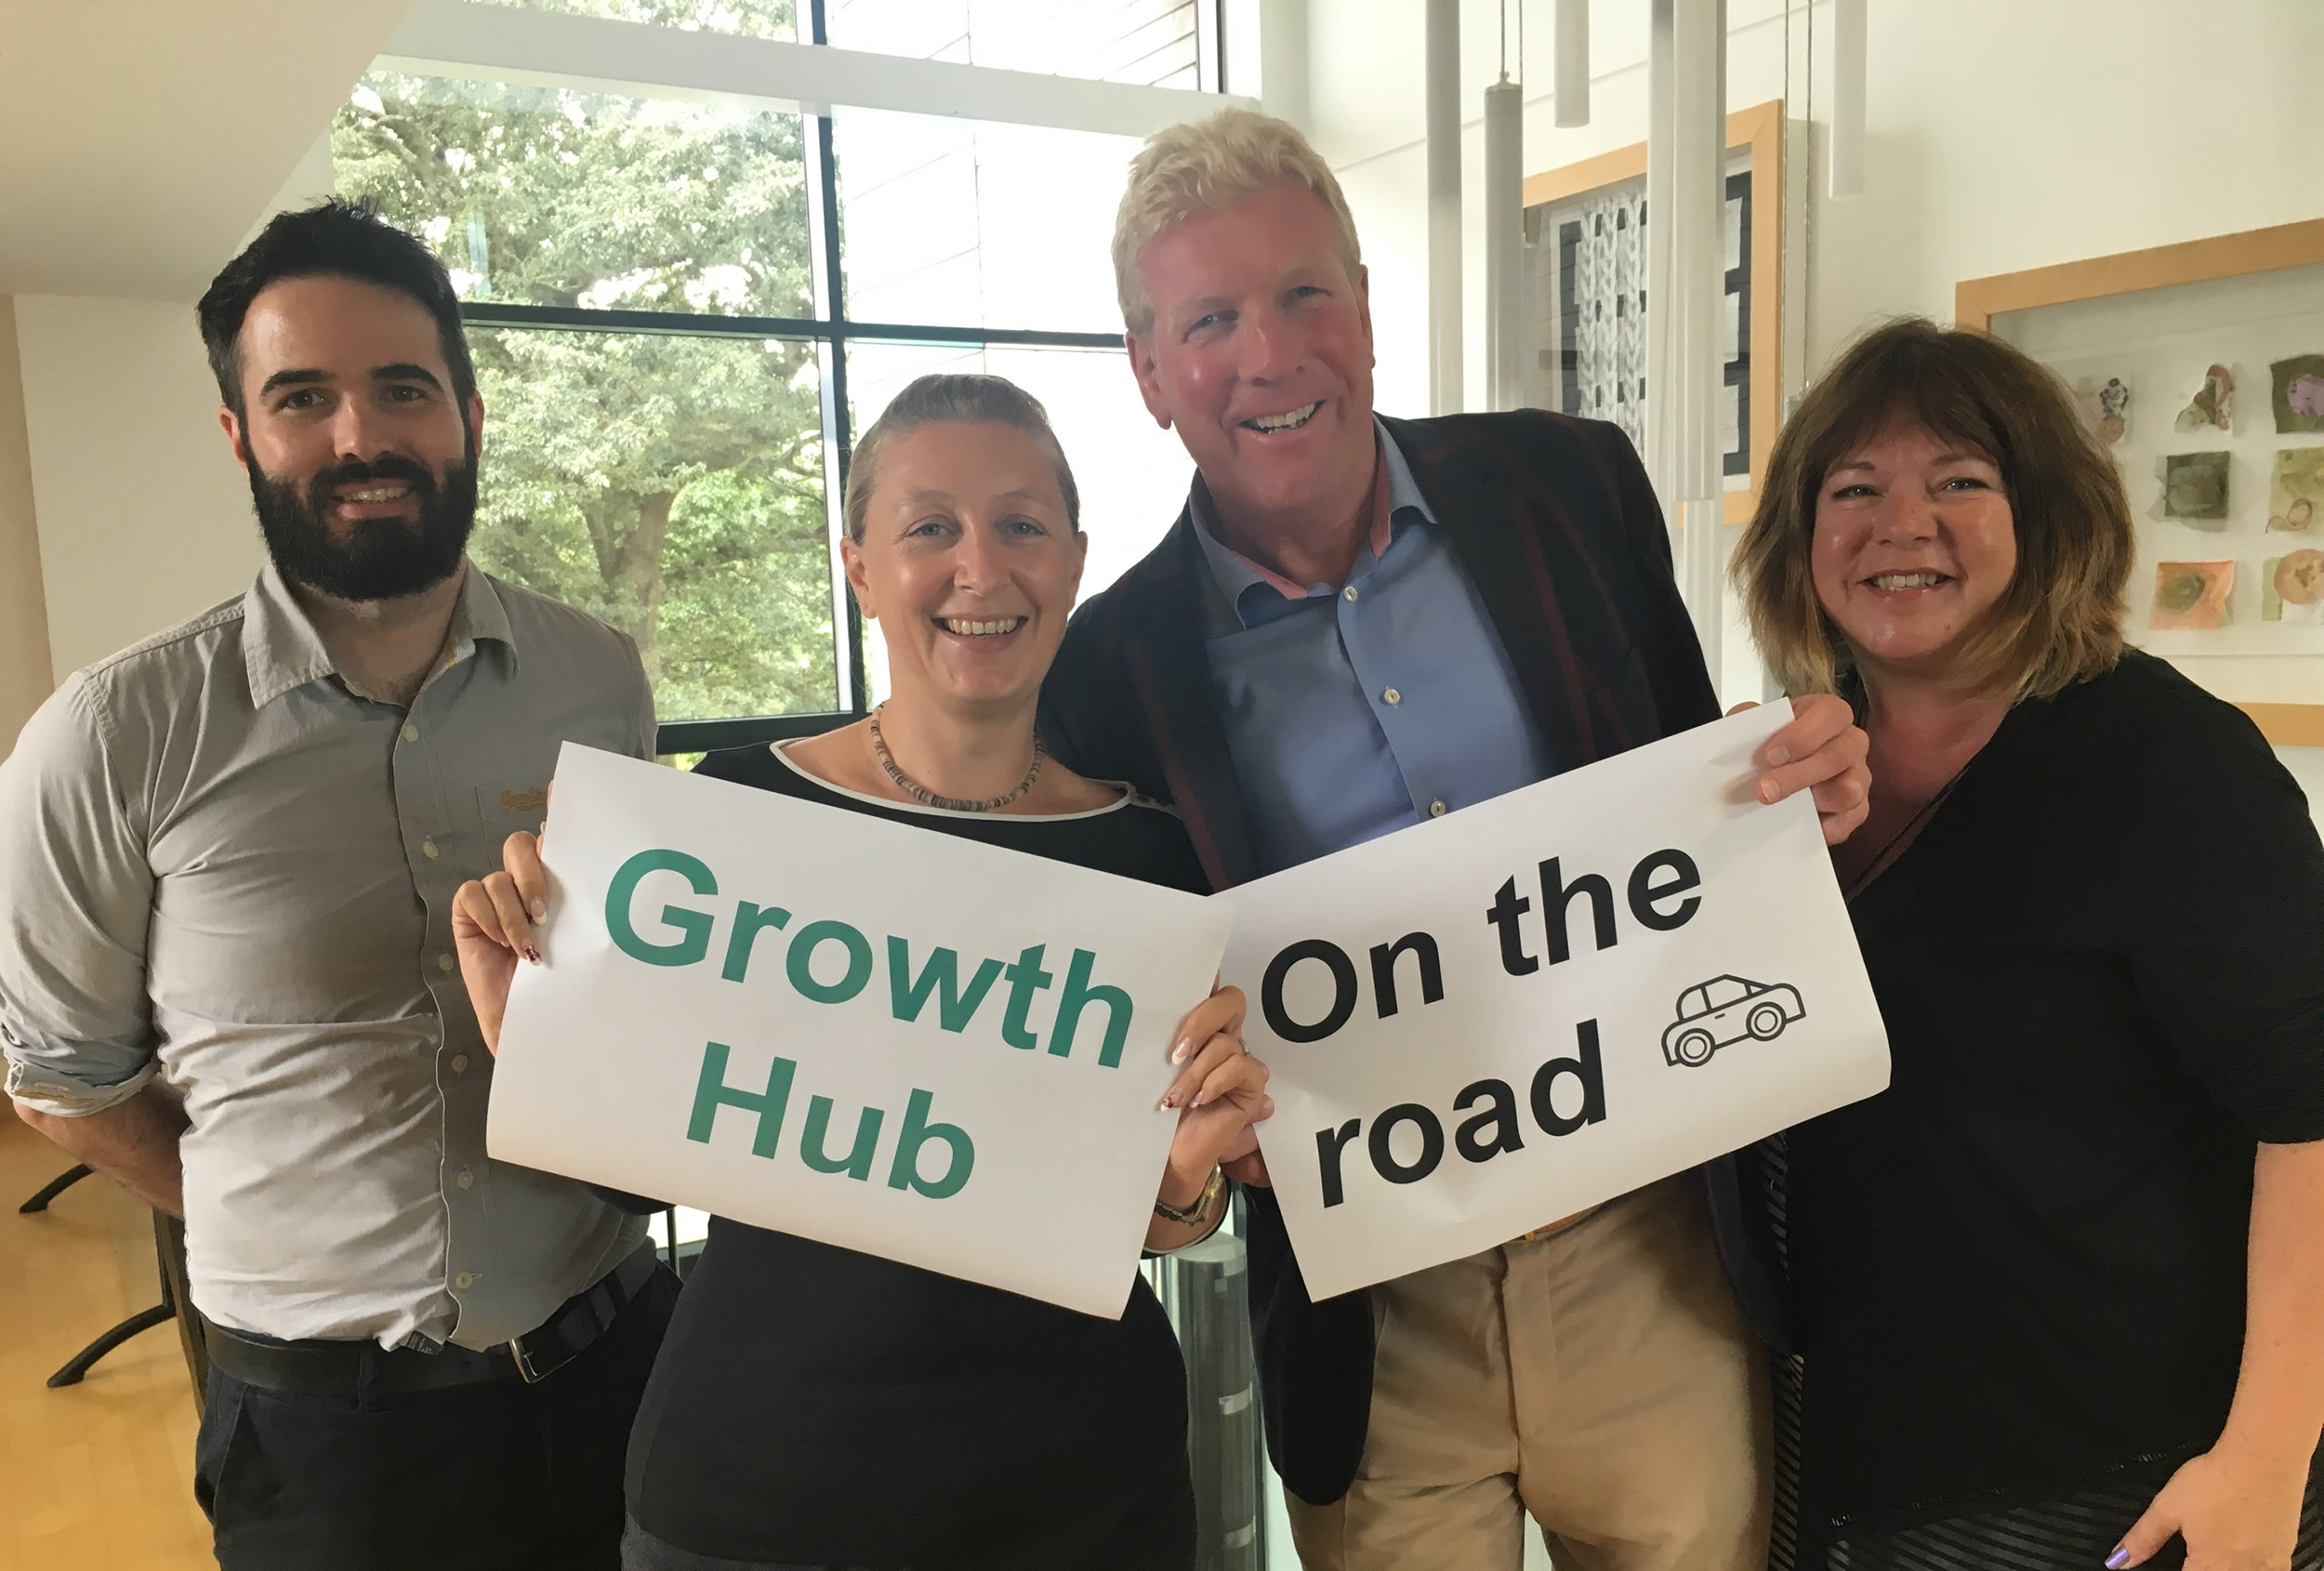 Growth Hub On The Road